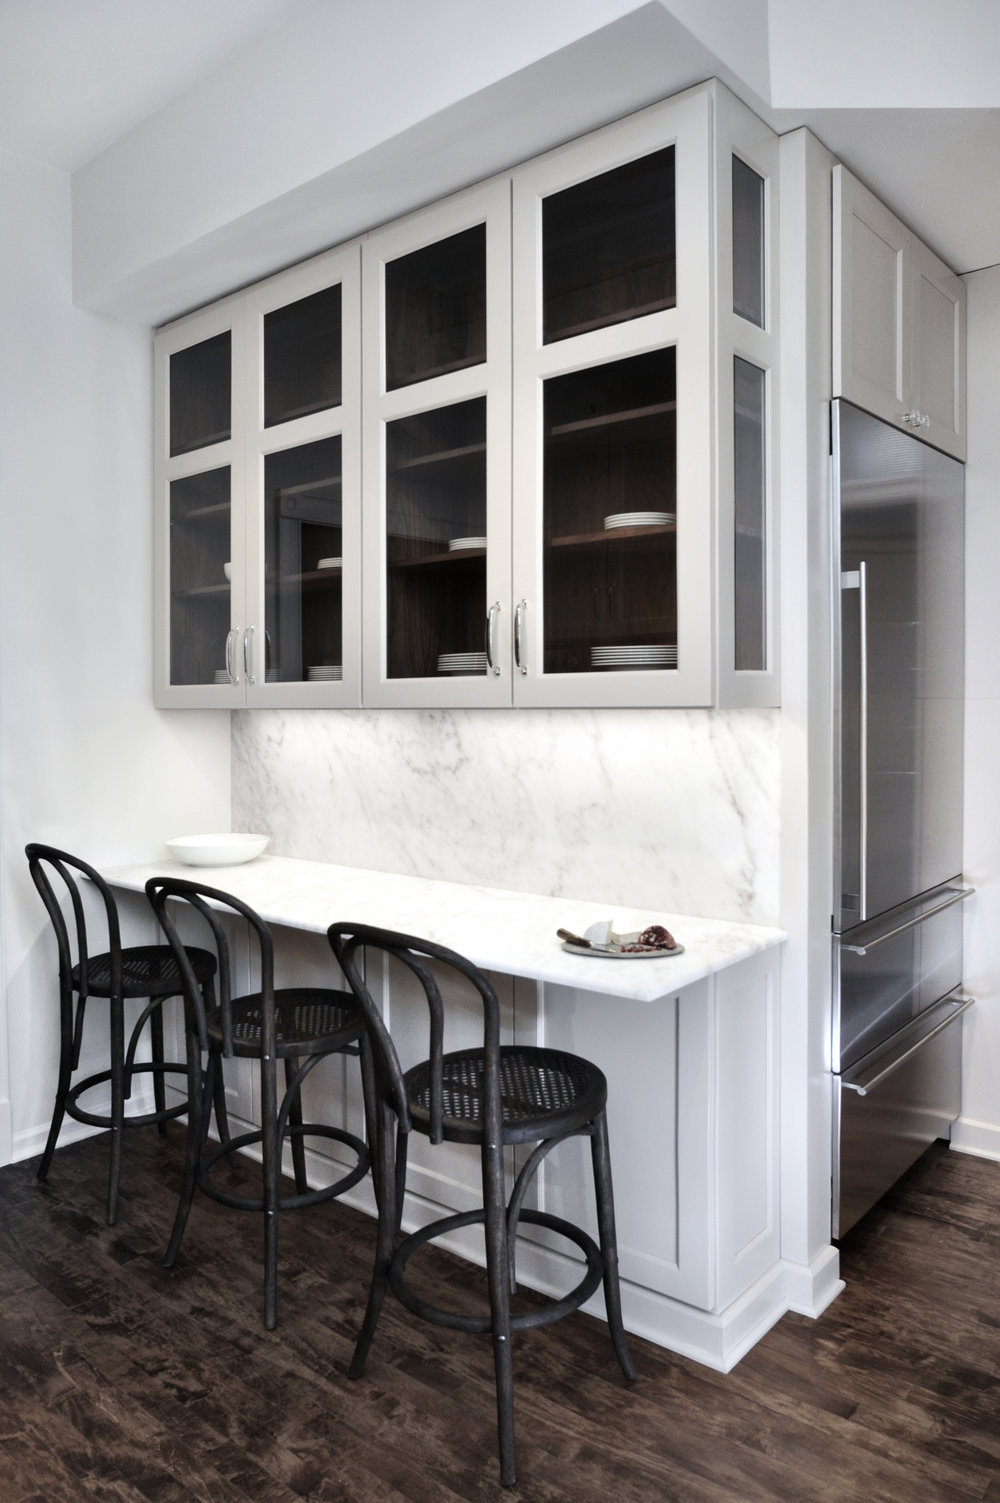 debaun studio_Astor Street Kitchen_photo 3.jpg